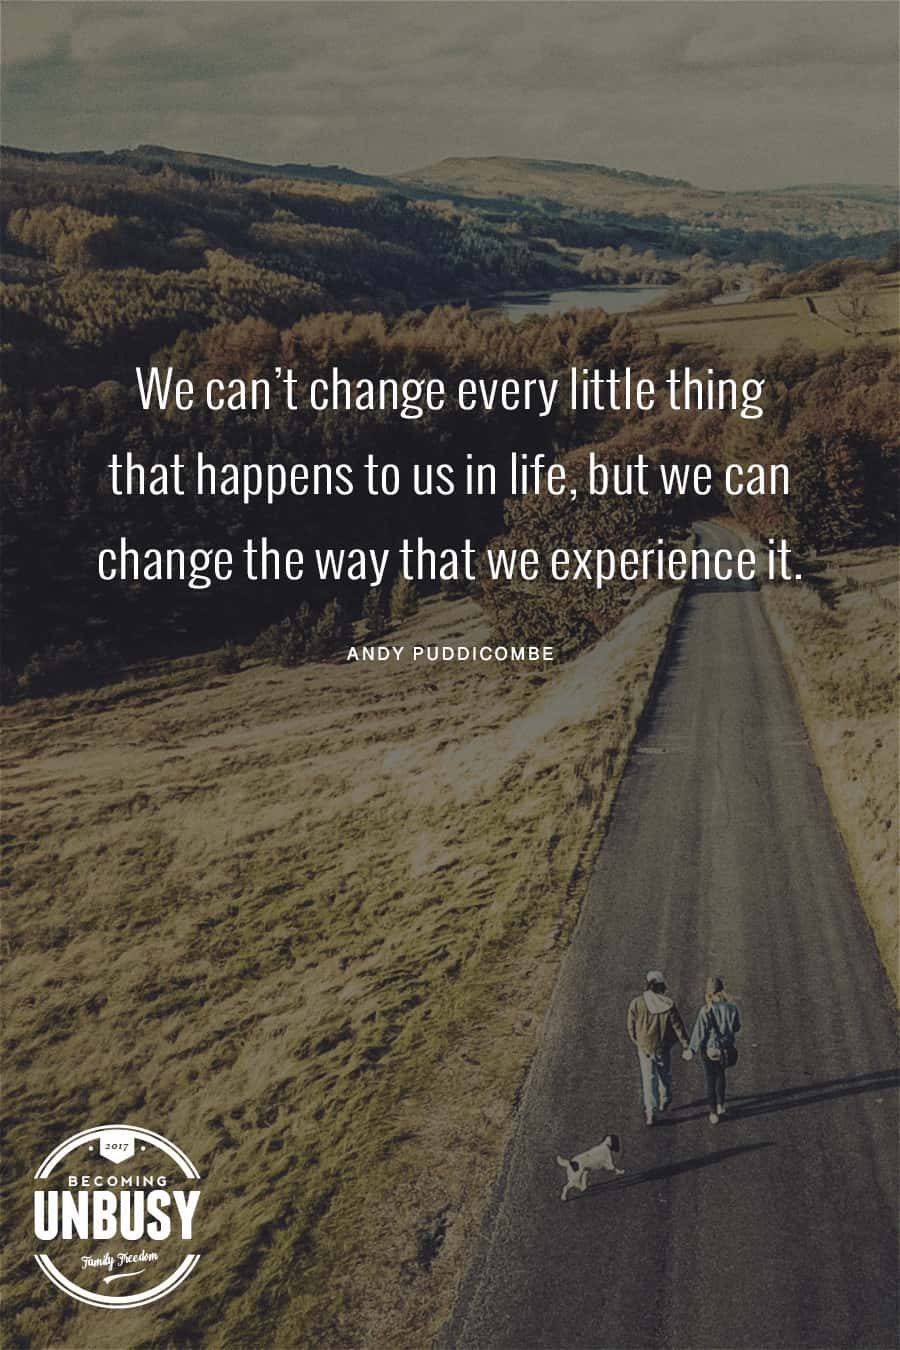 We can't change every little thing that happens to us in life, but we can change the way that we experience it. - Andy Puddicombe *Great list of TED Talks that will change how you use time. Loving this Becoming UnBusy site!